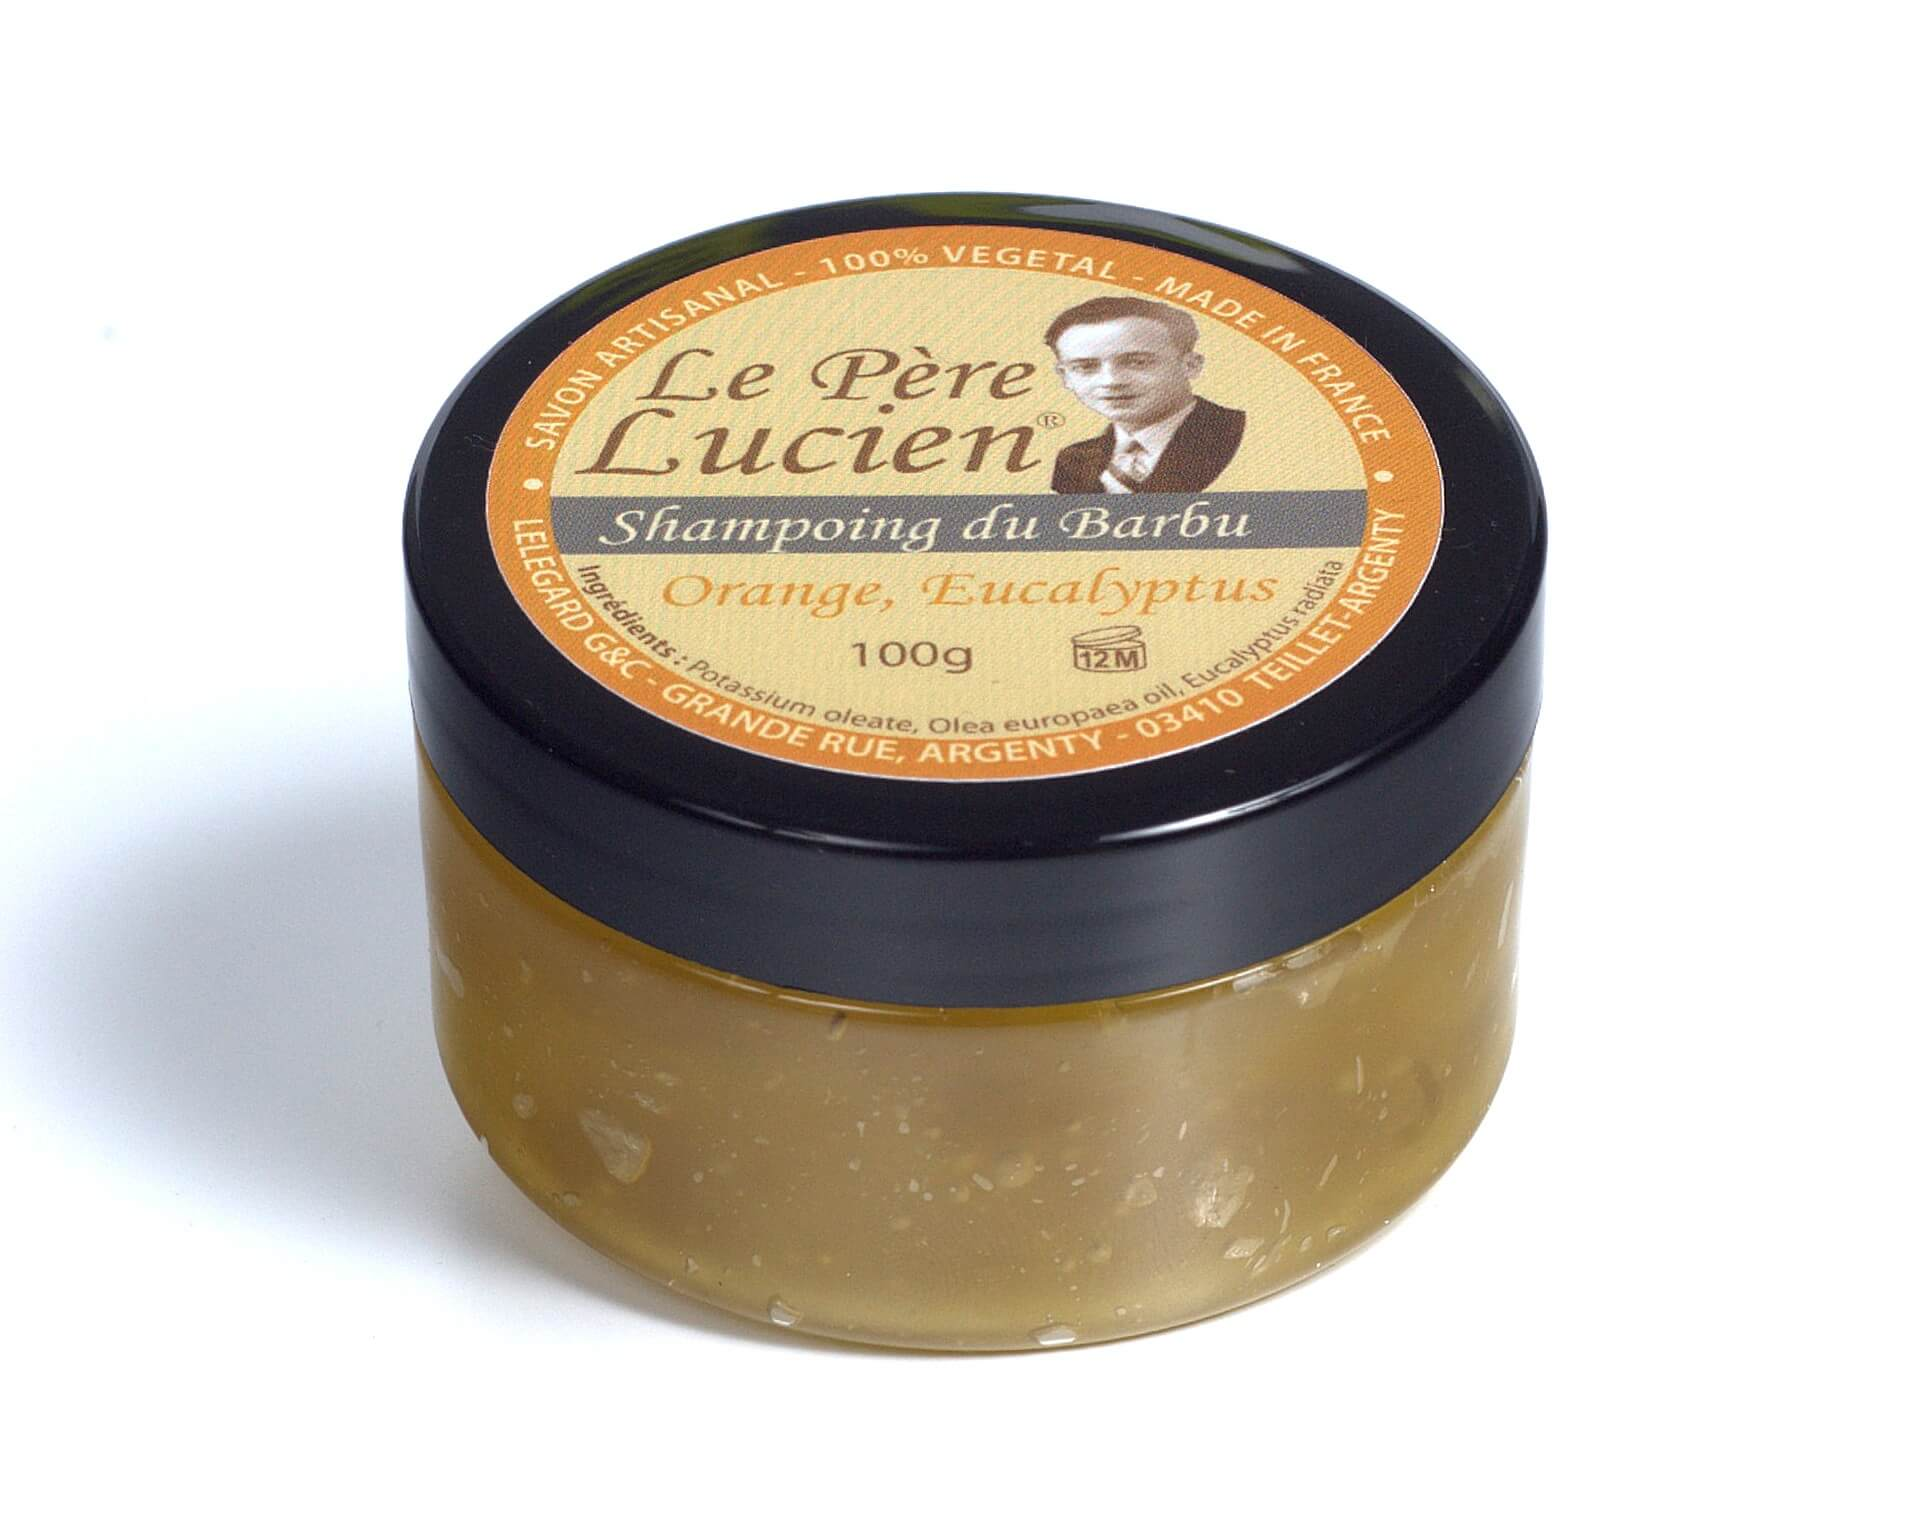 SAC Avril 2016 - Page 6 1-le-pere-lucien-savon-a-raser-shaving-soap-lpl-